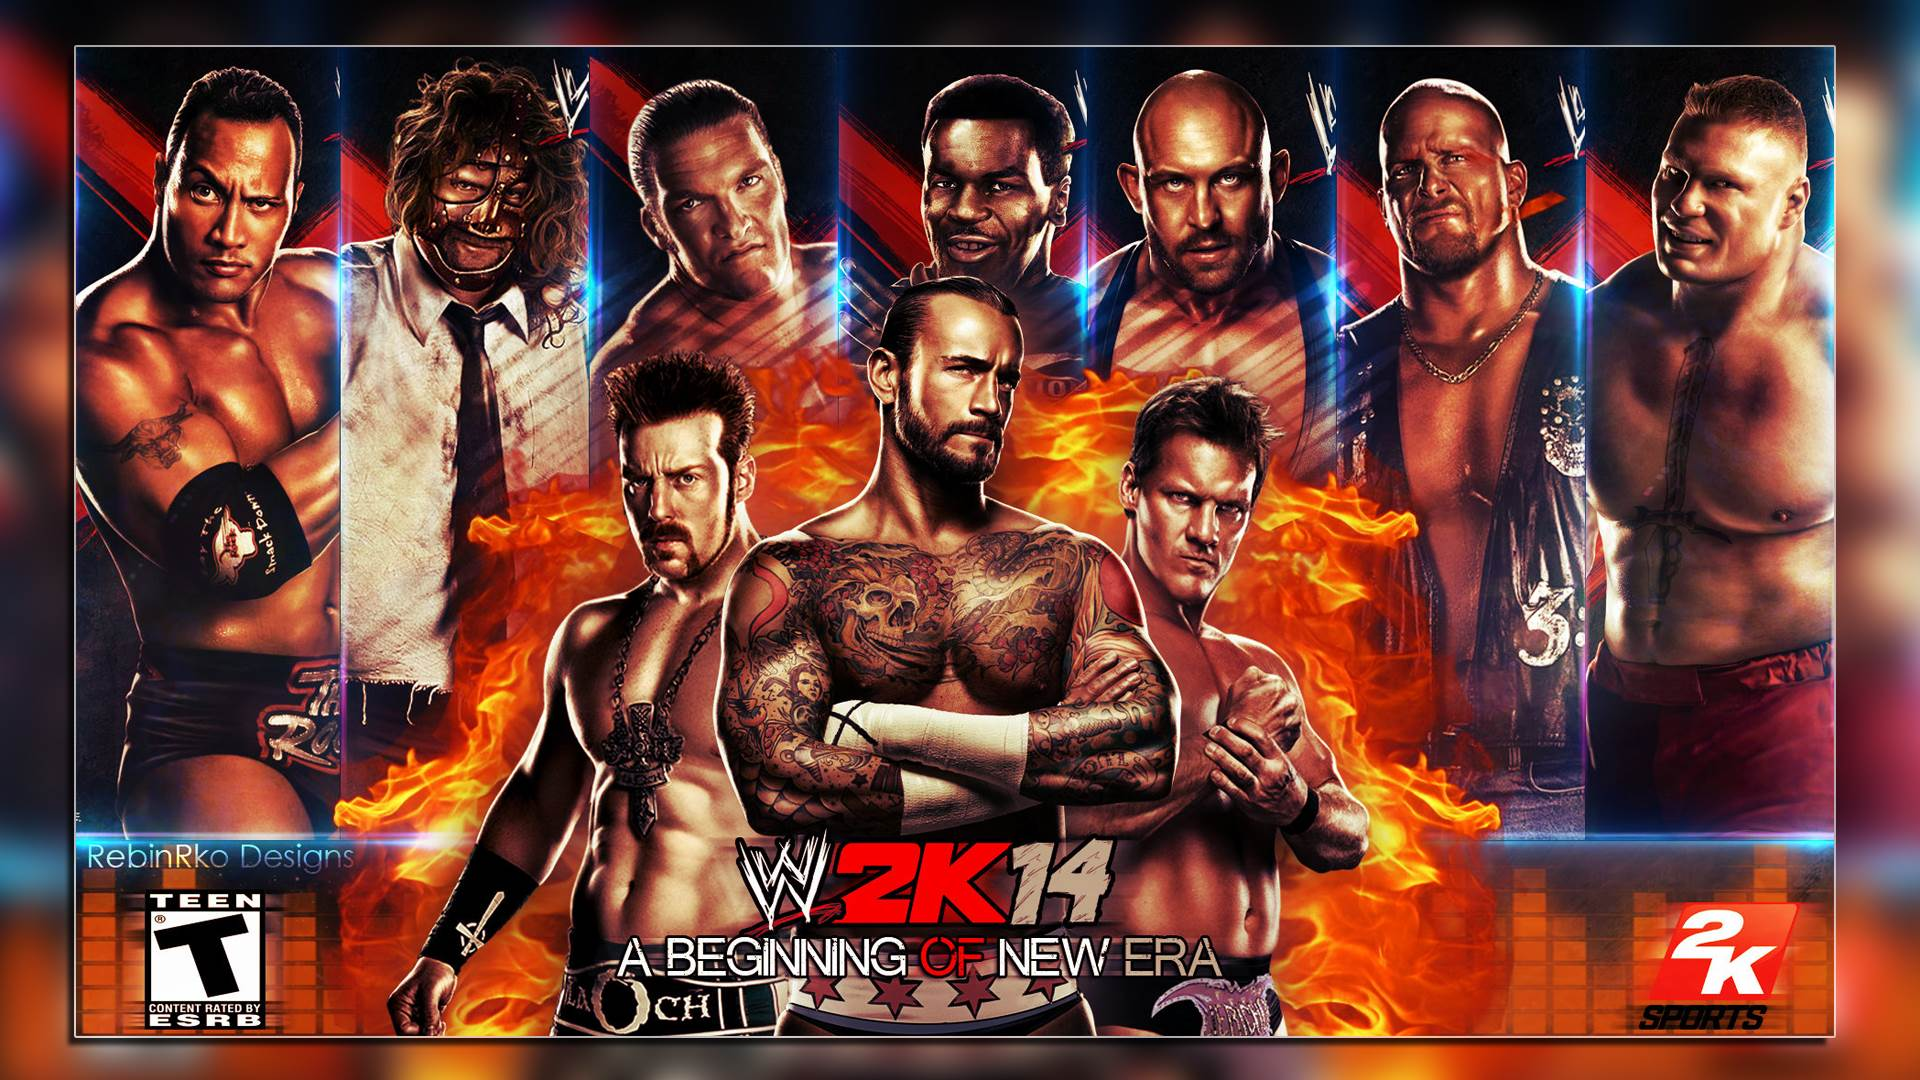 wwe 2k14 wallpaper in hd